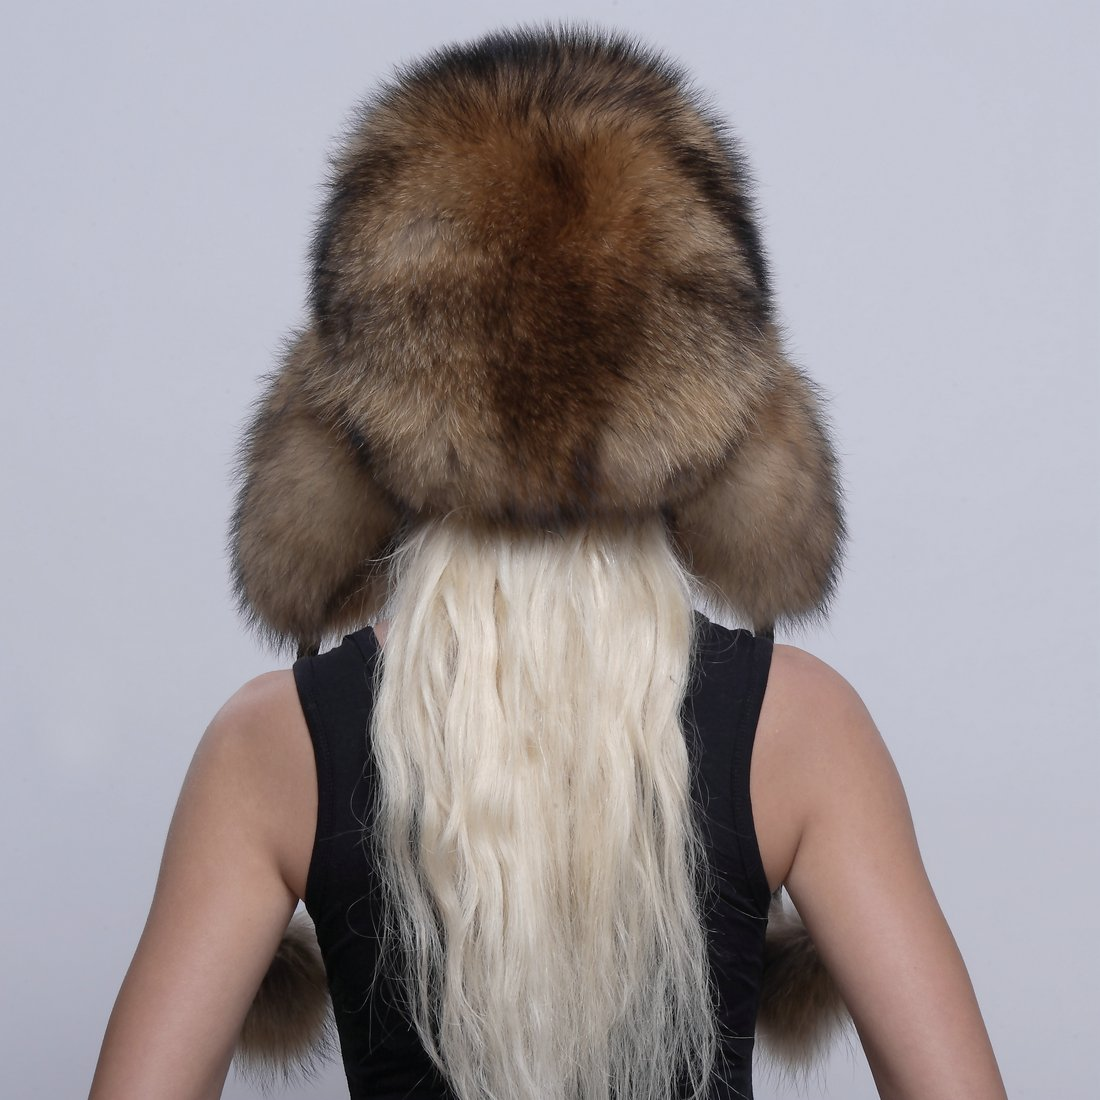 URSFUR Genuine Raccoon Fur Russian Ushanka Trapper Hat Cap with Fur Ball Pompom by URSFUR (Image #4)